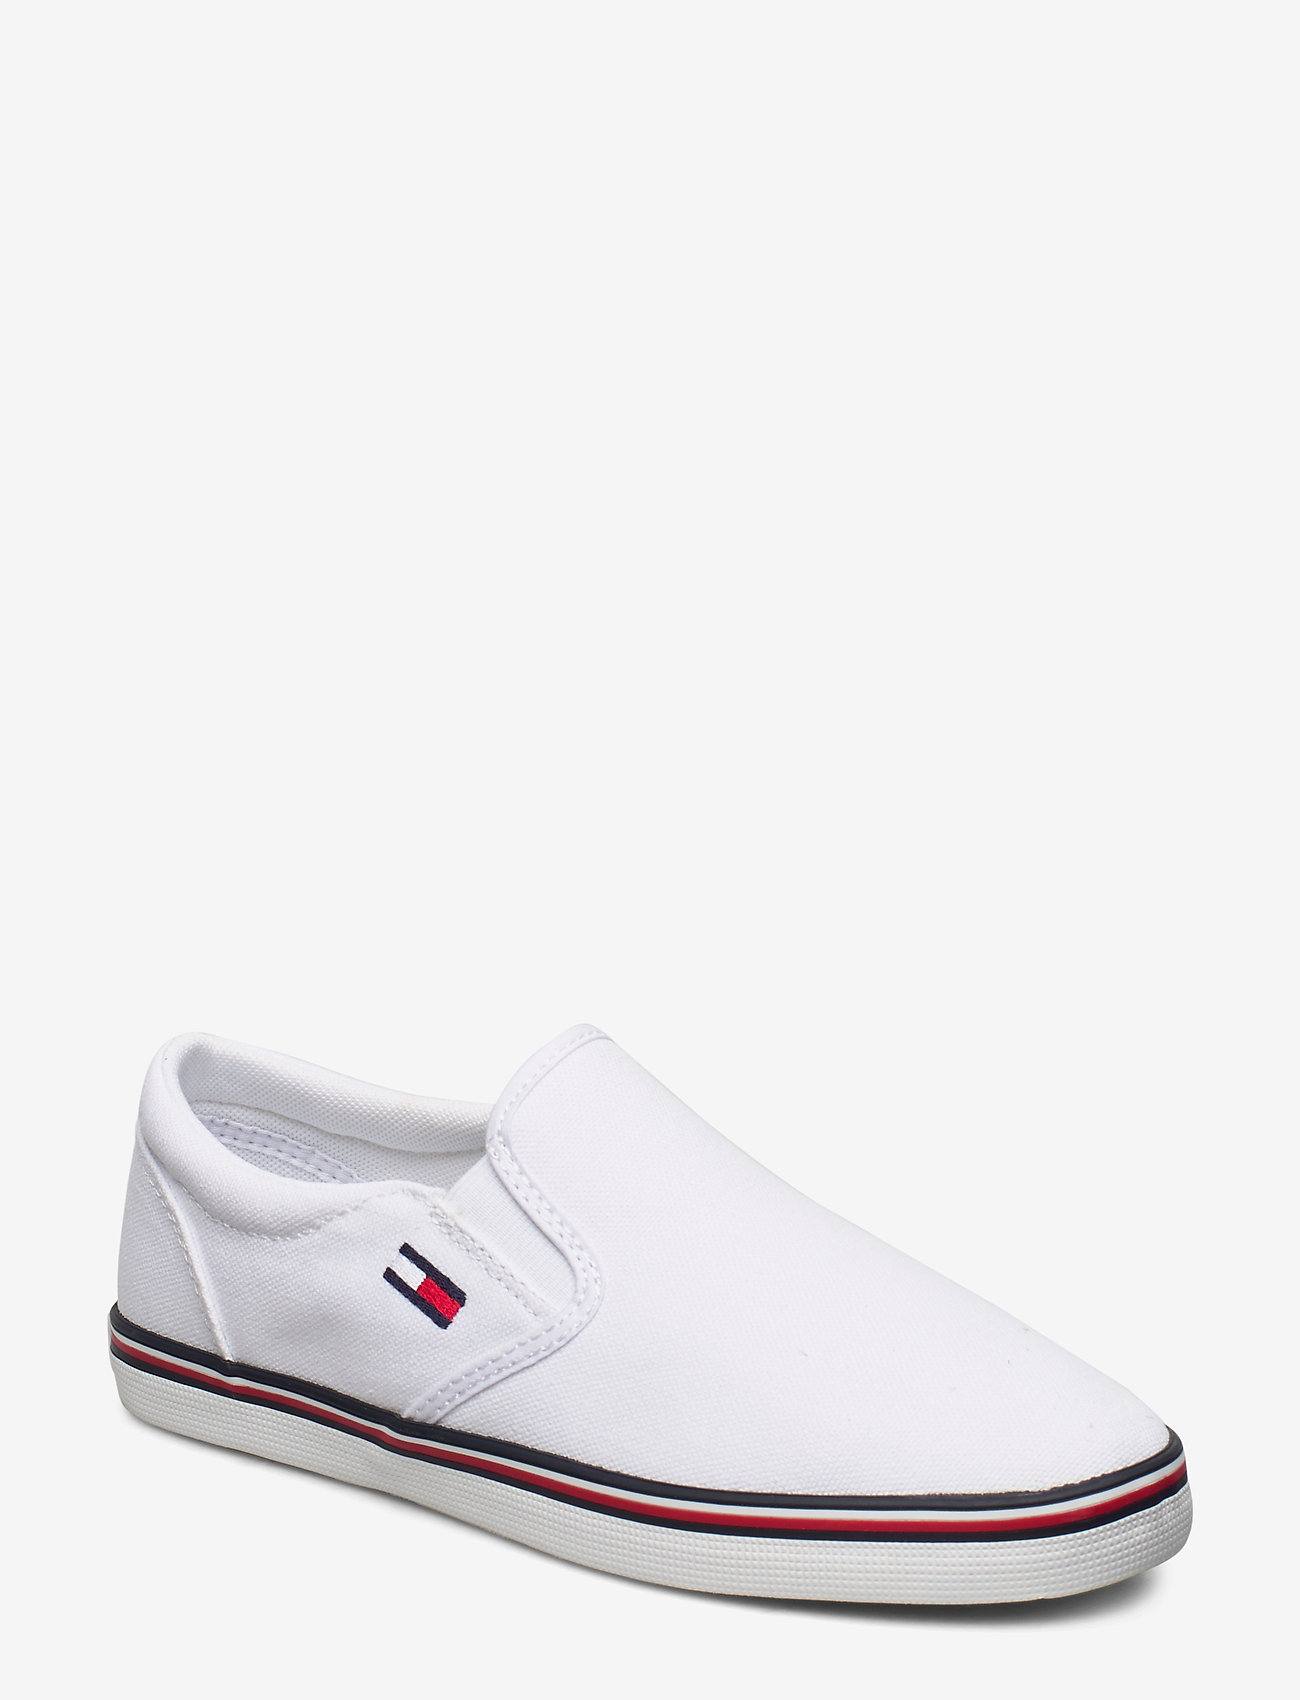 Tommy Hilfiger - ESSENTIAL SLIP ON SNEAKER - slip-on sneakers - white - 0